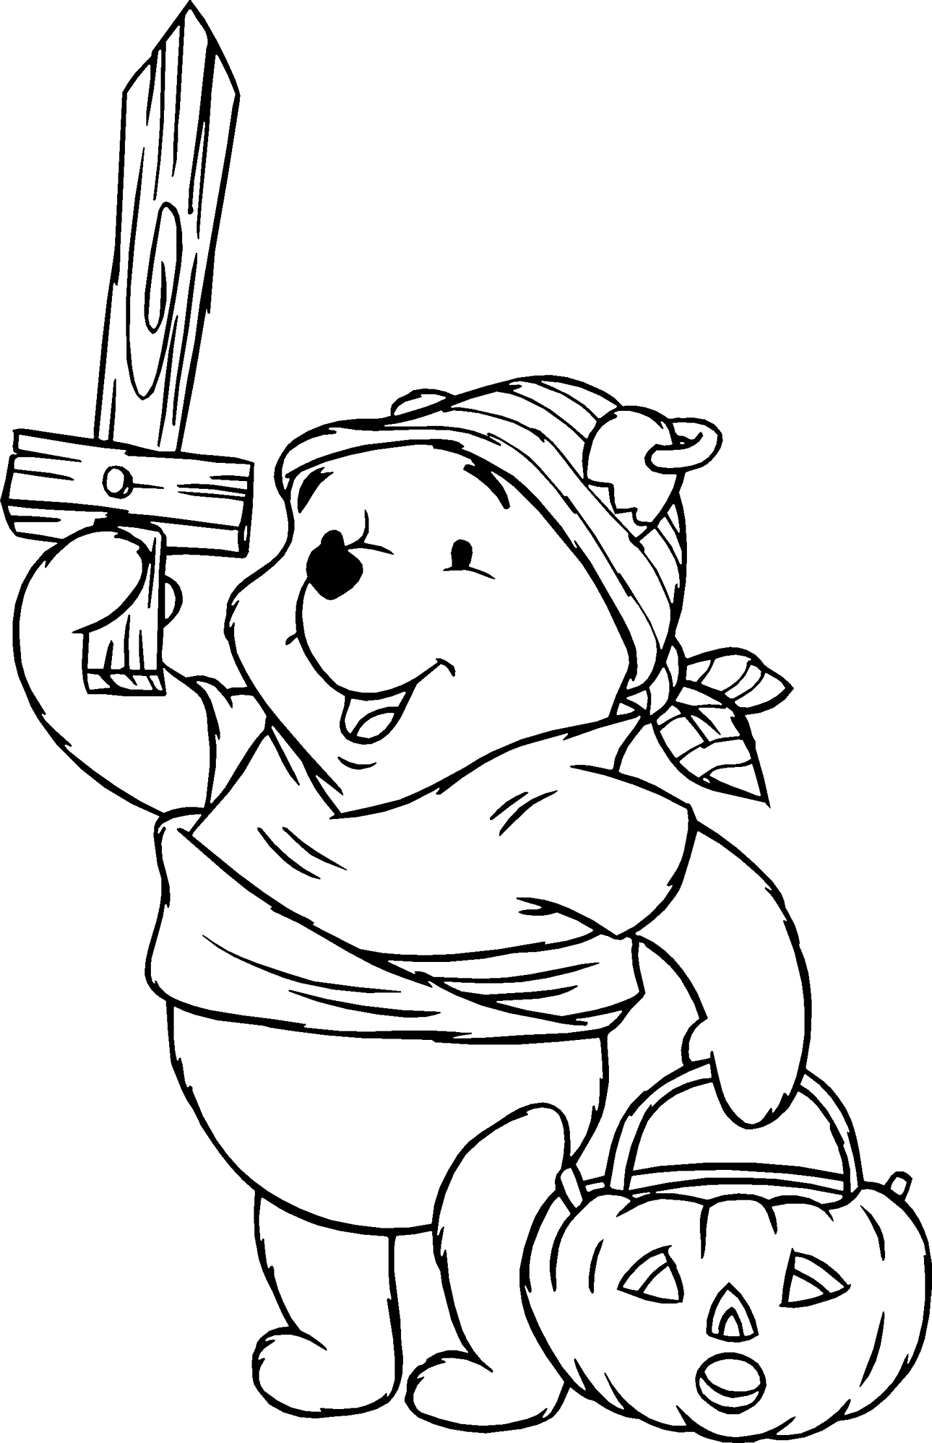 - Coloring Pages Winnie The Pooh. Free Printable Winnie The Pooh